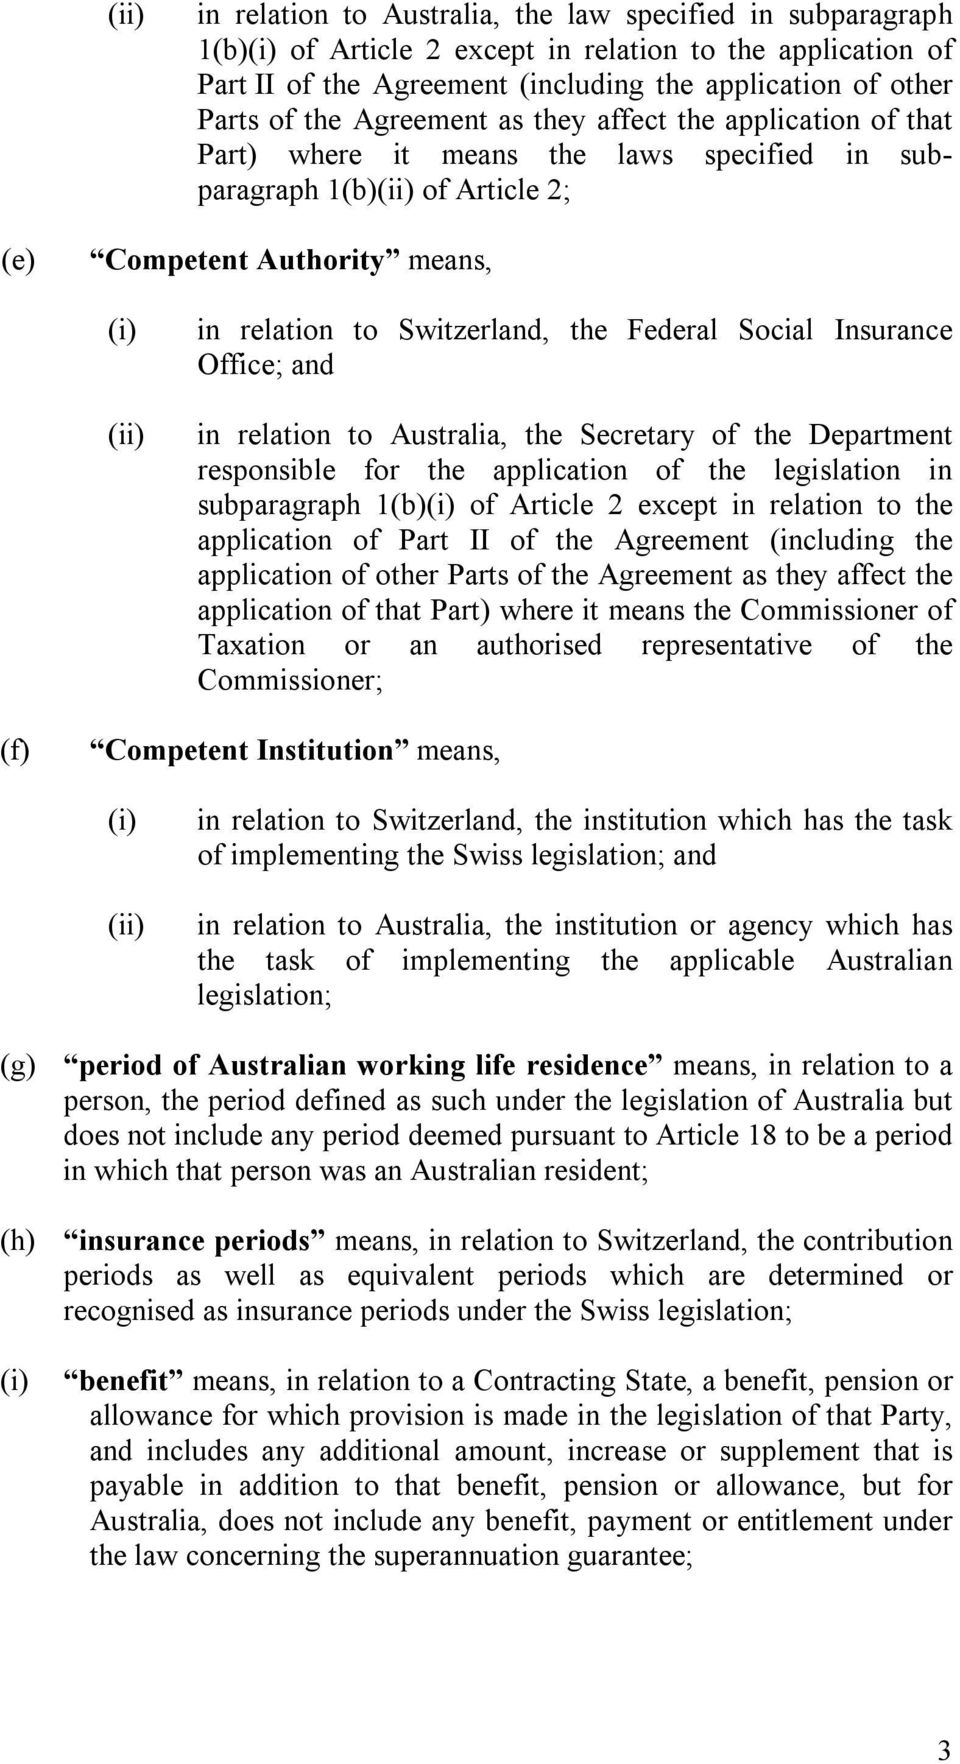 Federal Social Insurance Office; and in relation to Australia, the Secretary of the Department responsible for the application of the legislation in subparagraph 1 of Article 2 except in relation to